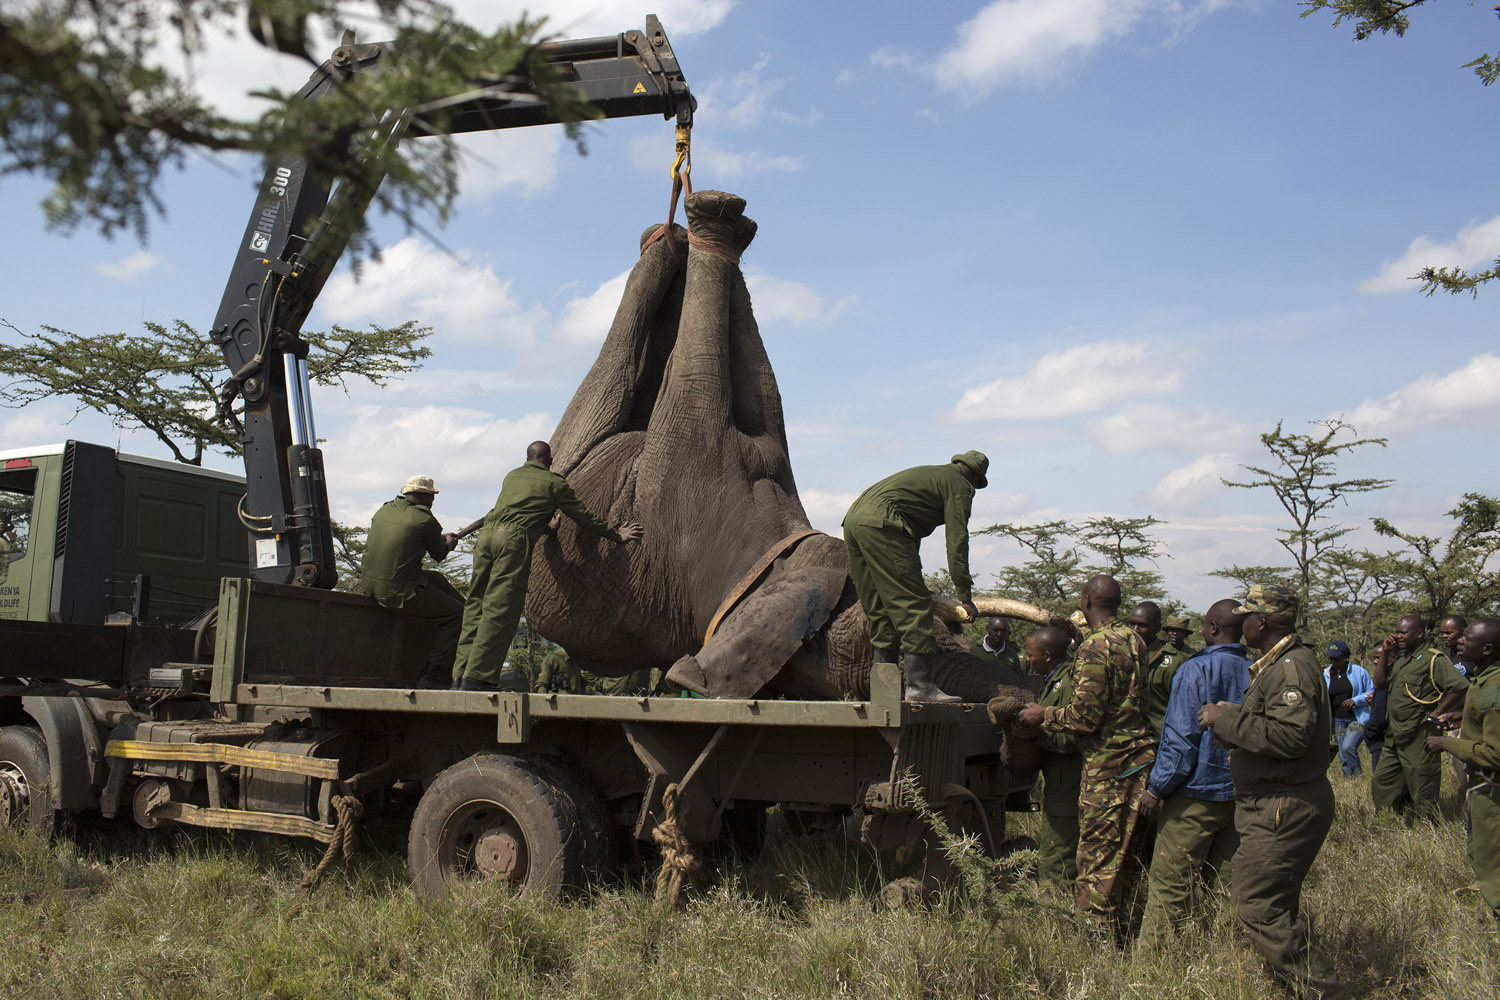 June 19, 2013. Kenya Wildlife Service (KWS) wardens secure a sedated elephant on the back of a truck during a relocation exercise, aimed at relocating to a national park 10 elephants that were encroaching on community land, on the margins of the Ol Pejeta conservancy in central Kenya.